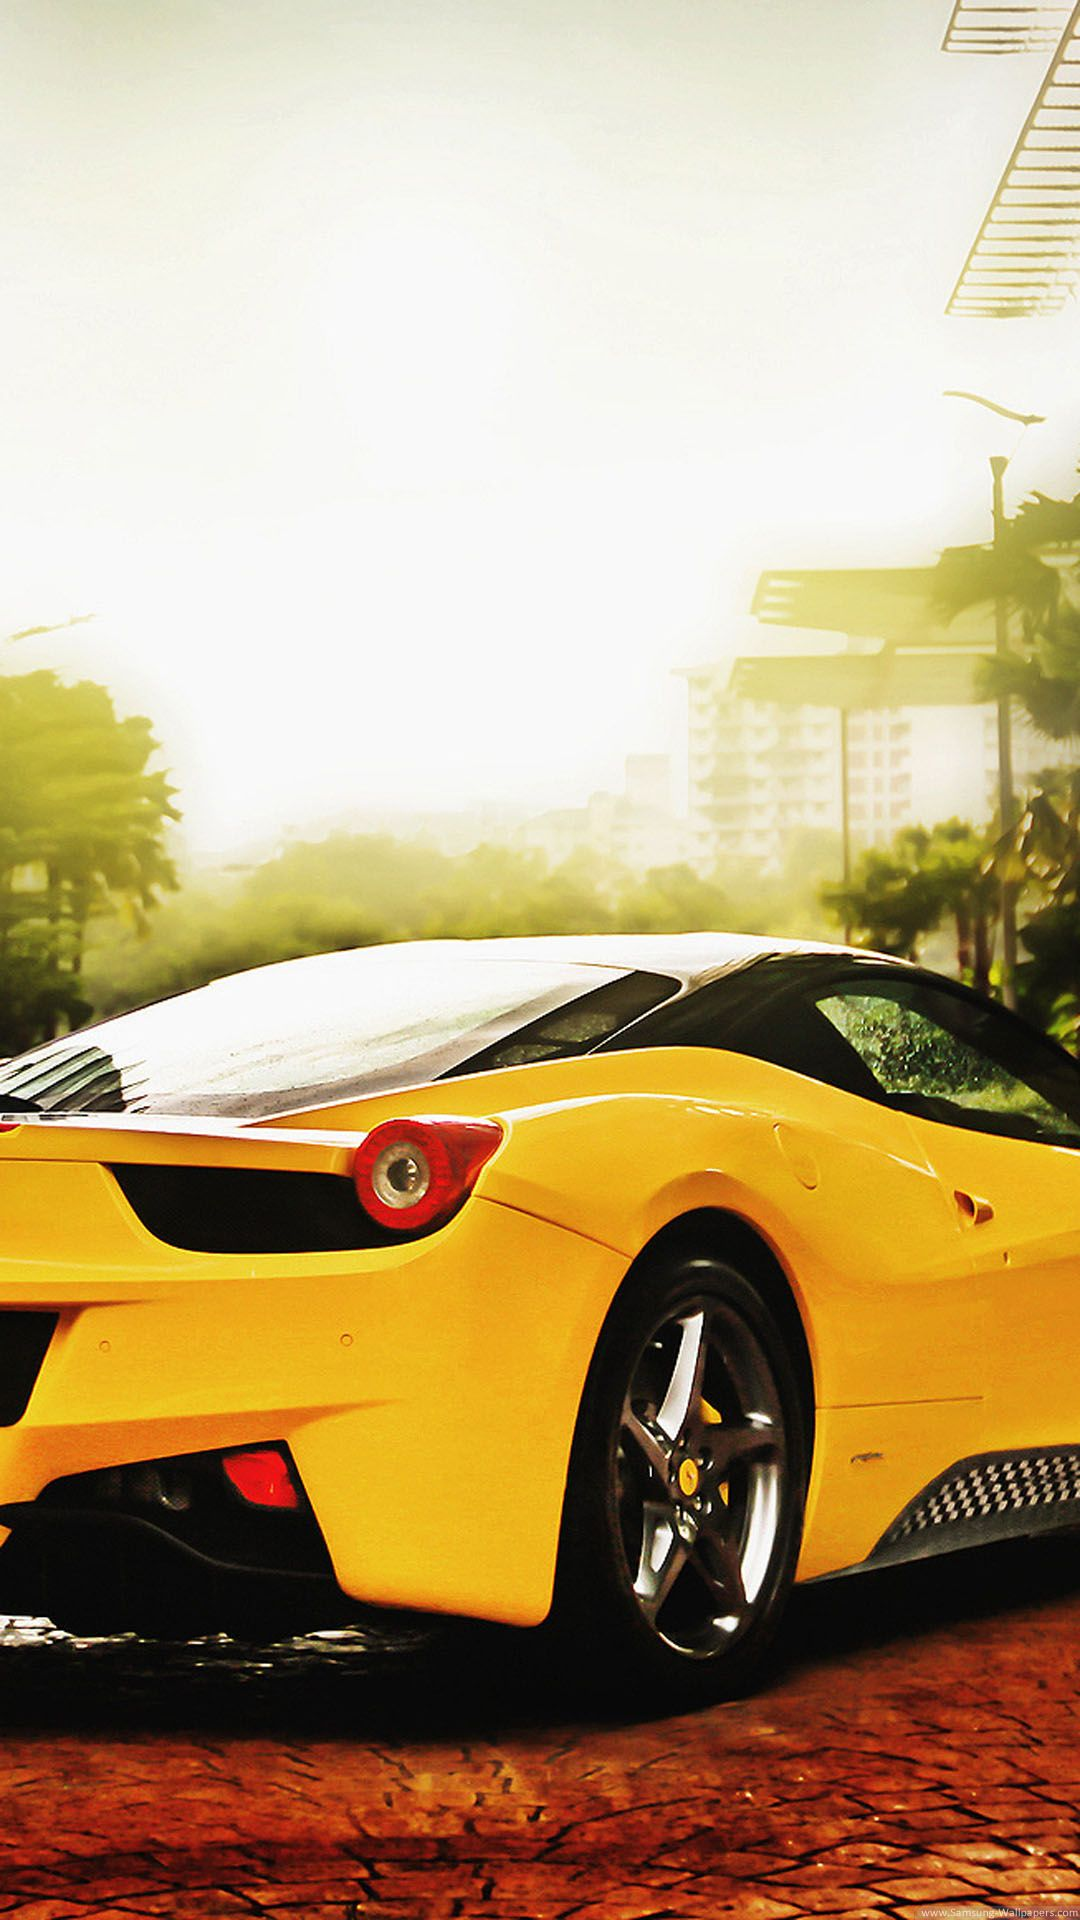 Ferrari 458 Spider Yellow IPhone 6 Plus HD Wallpaper   Top 10 Cars IPhone  Wallpapers